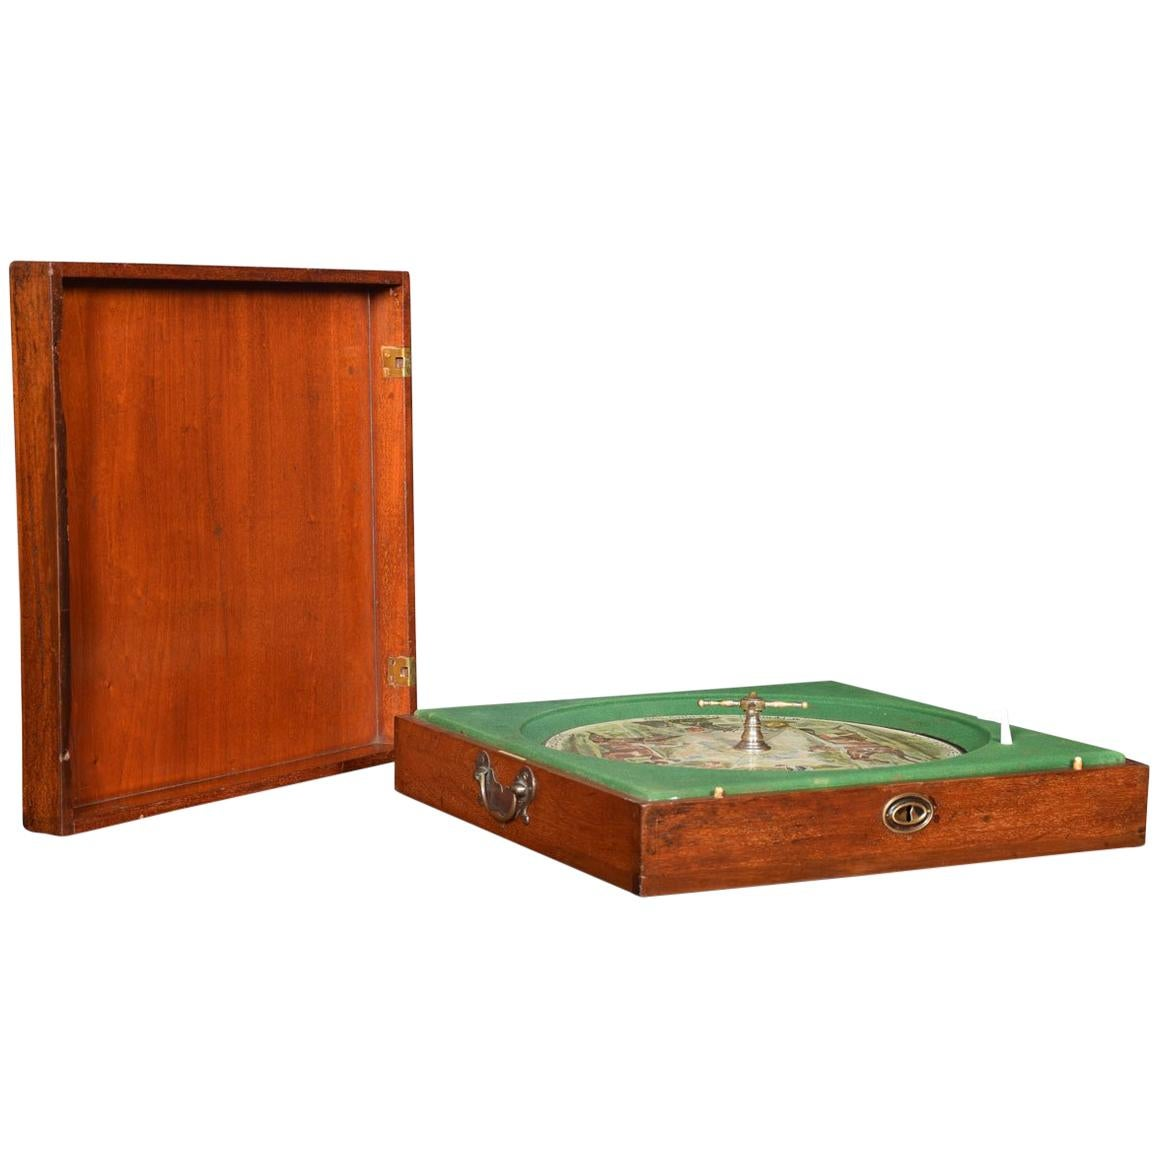 Mahogany Cased Sandown Roulette Style Horse Racing Game by F.H. Ayres, London